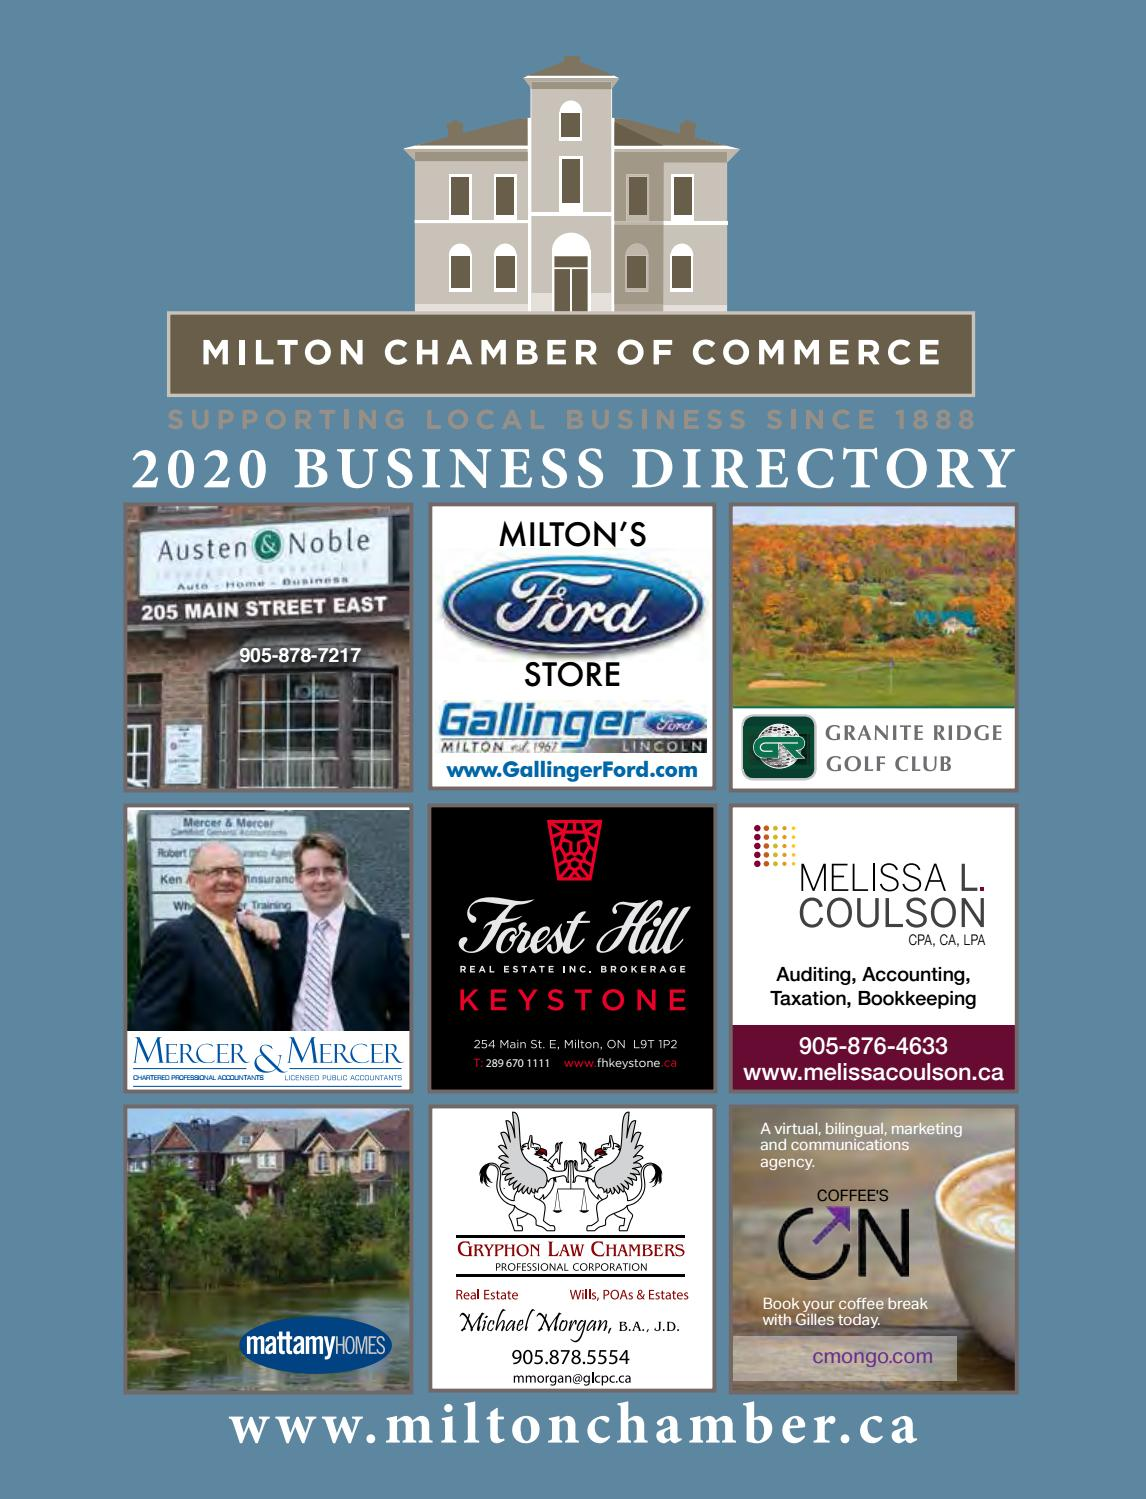 Milton Chamber Of Commerce 2020 Business Directory By Milton Chamber Of Commerce Issuu